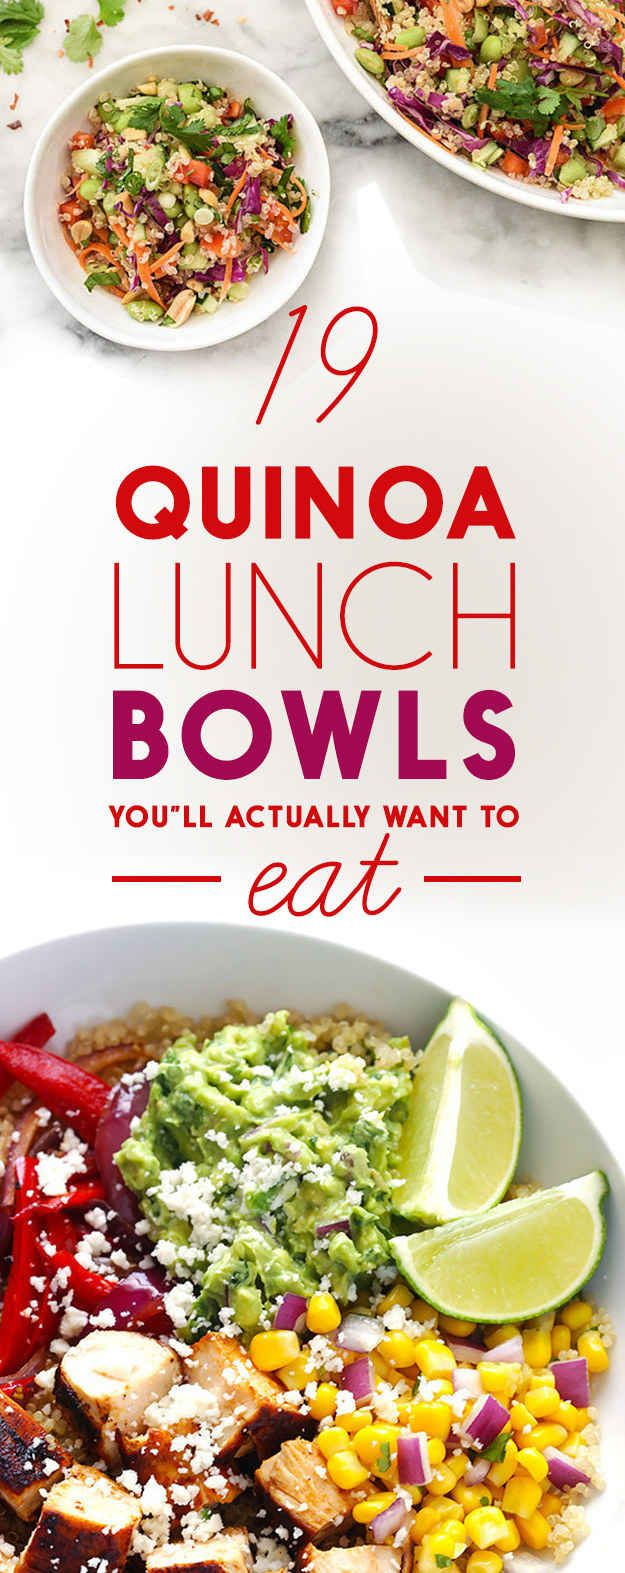 sports shoe sale 19 Quinoa Salads That Will Make You Feel Good About Your Life